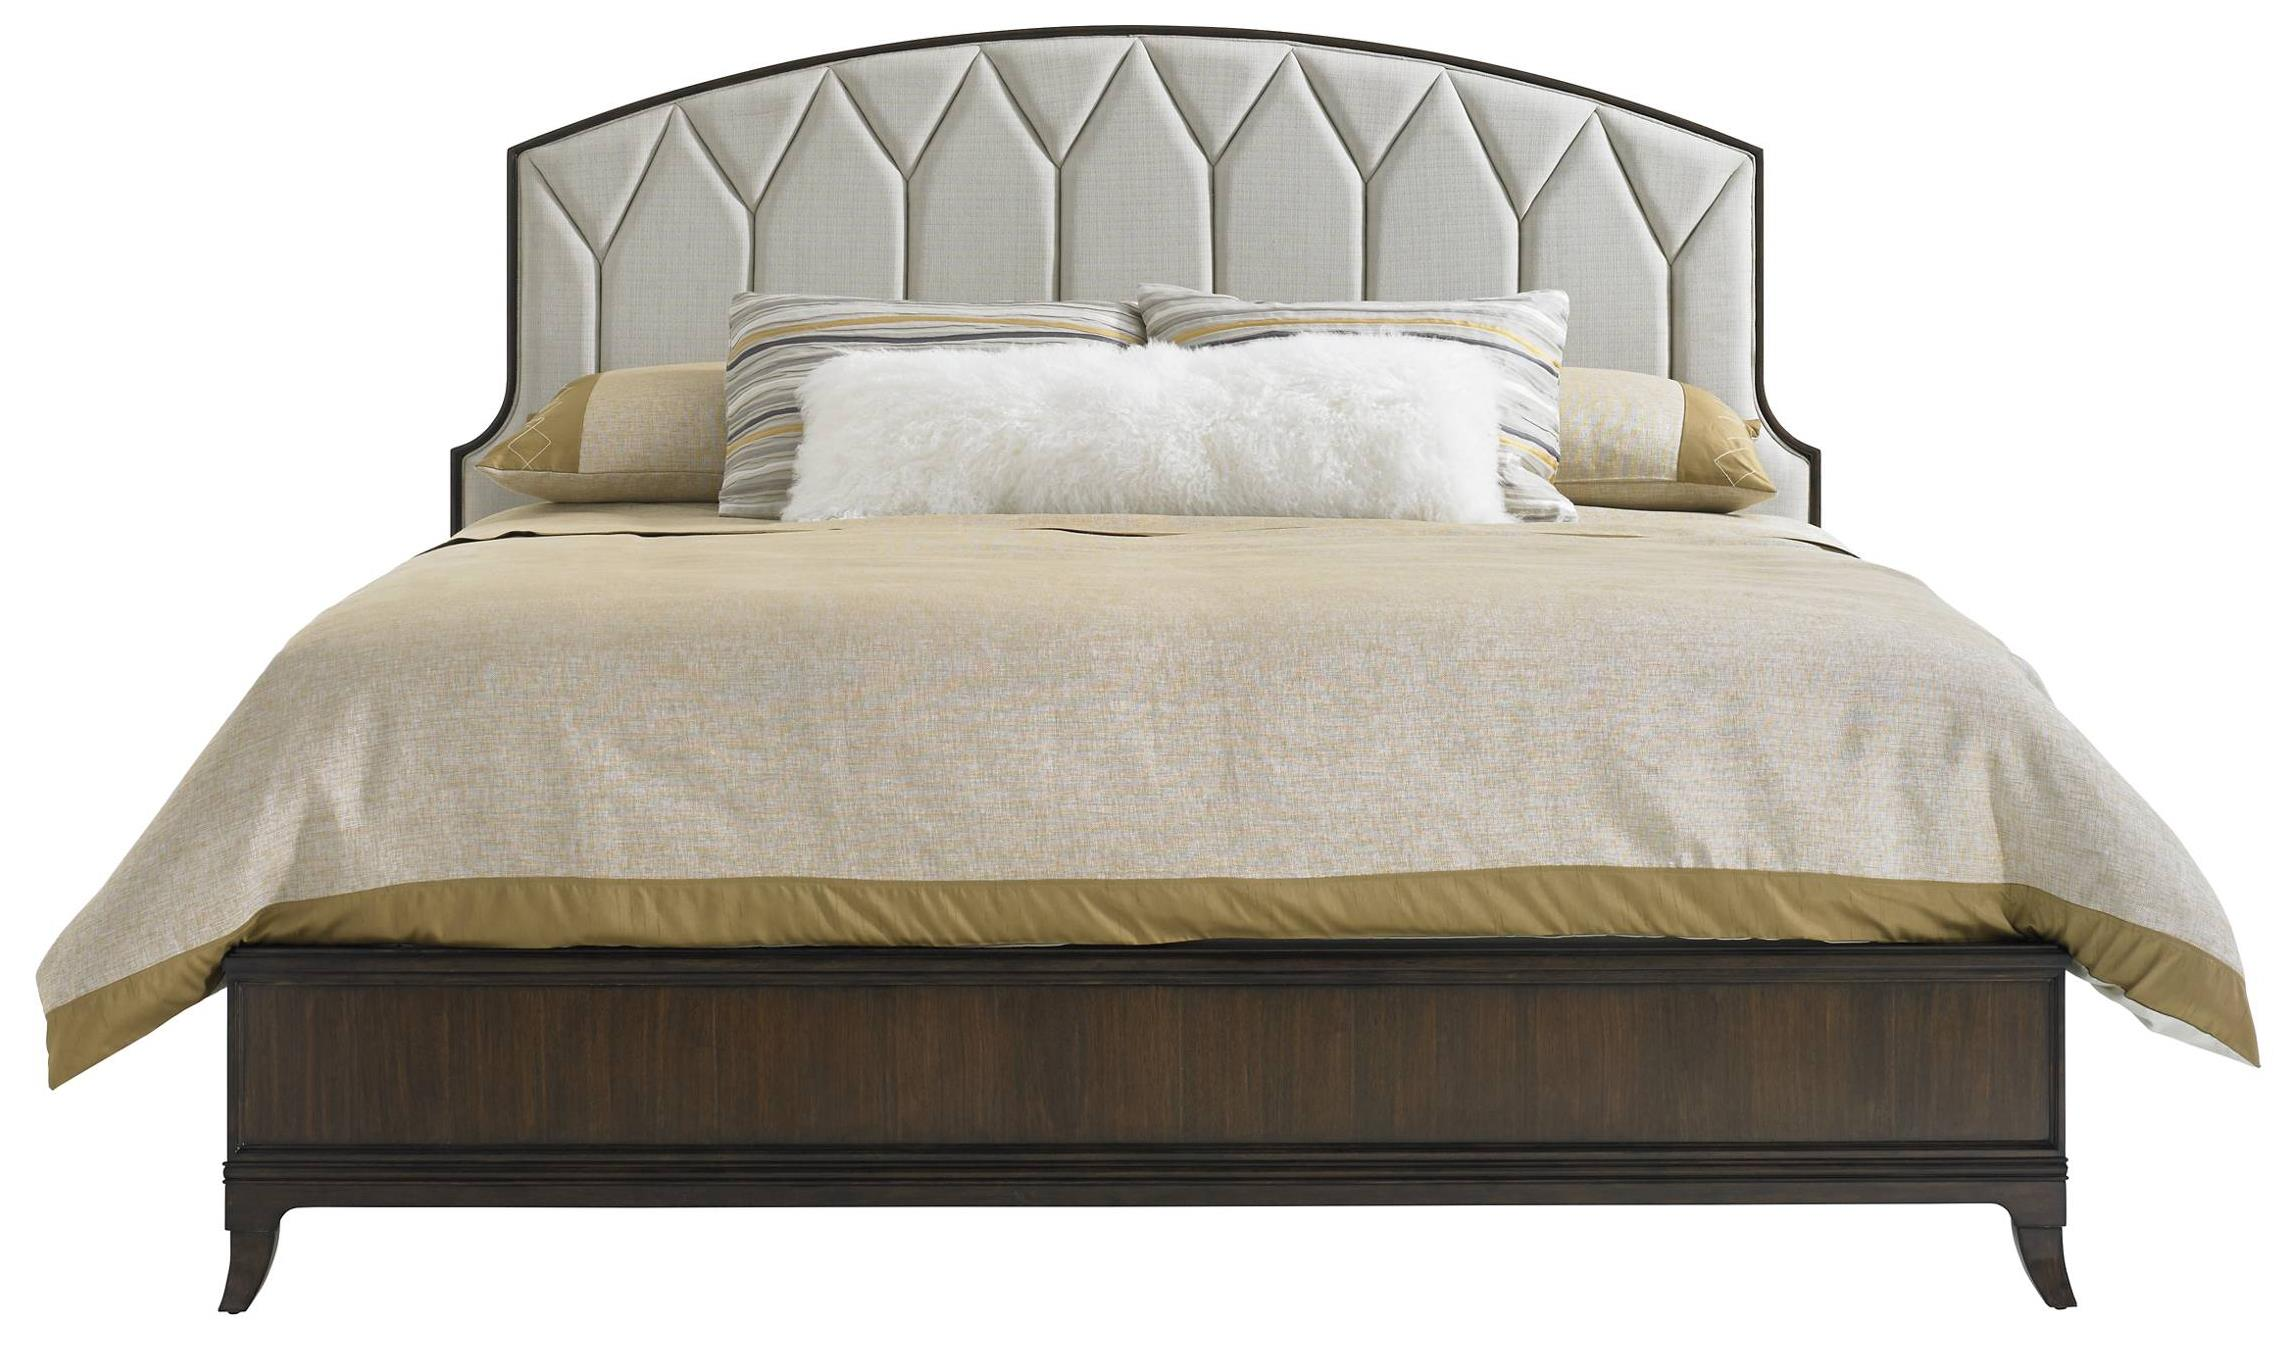 Stanley Furniture Crestaire California King Ladera Bed - Item Number: 436-13-48